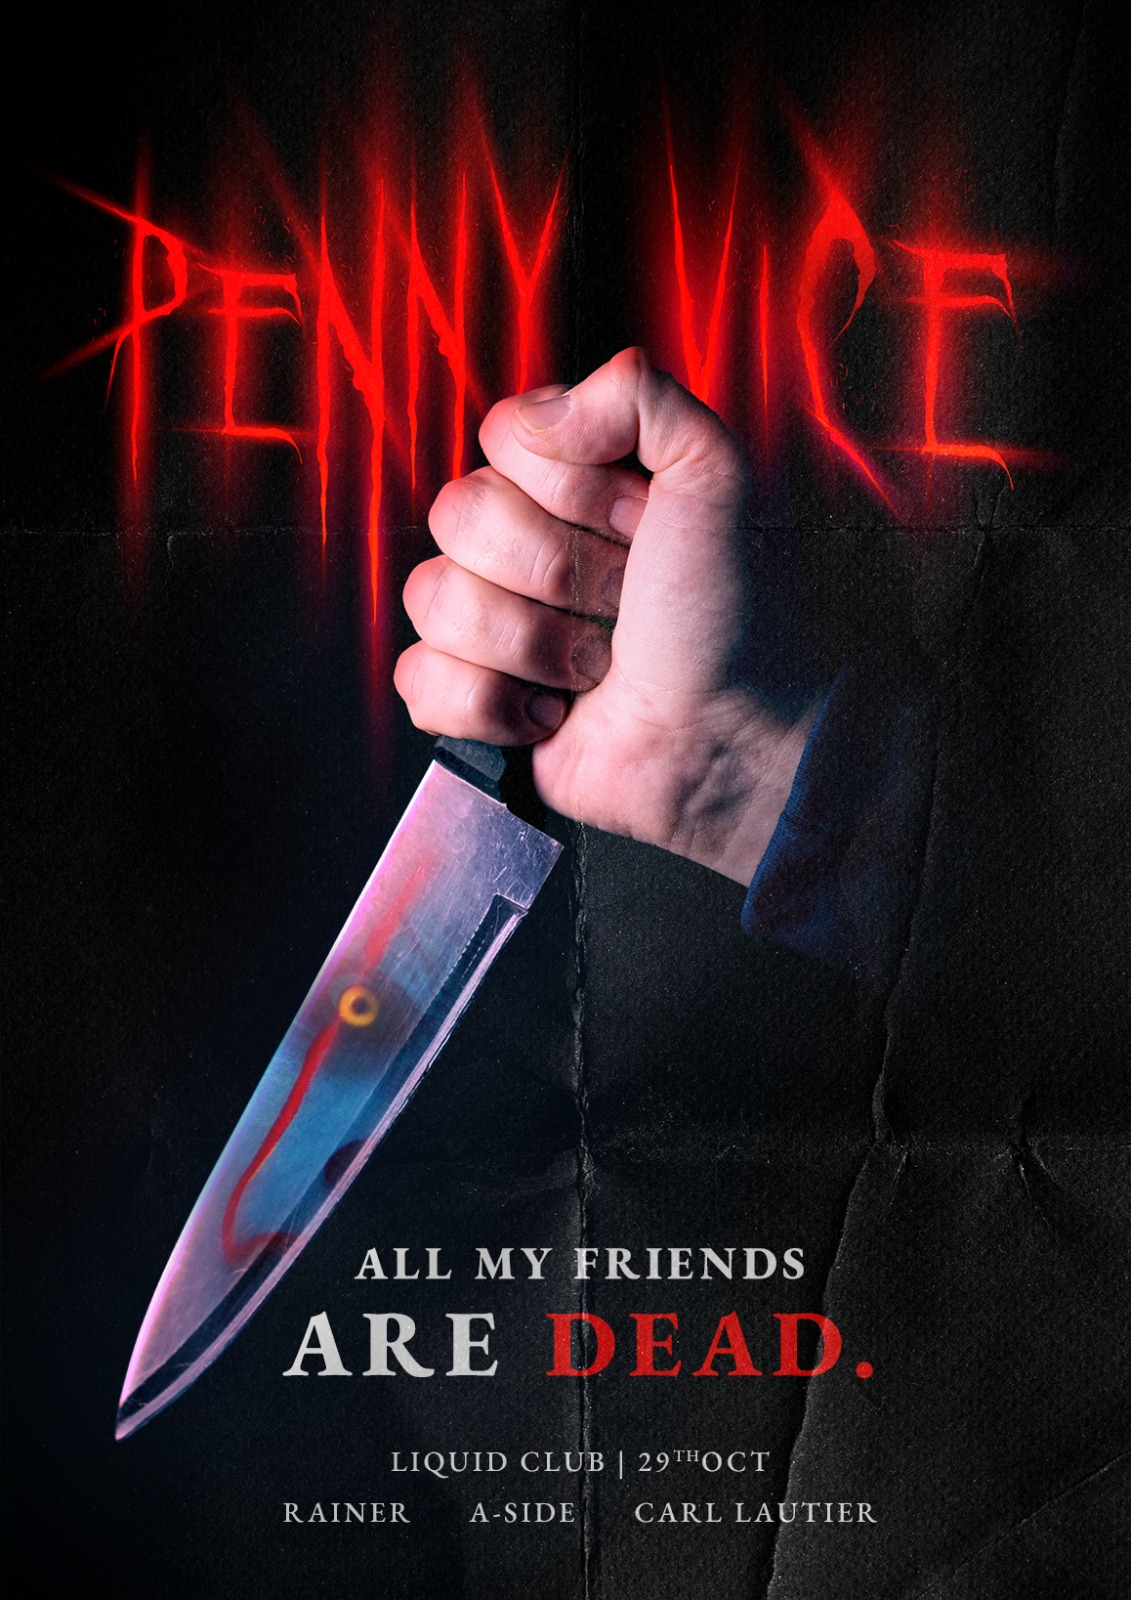 Penny Vice poster